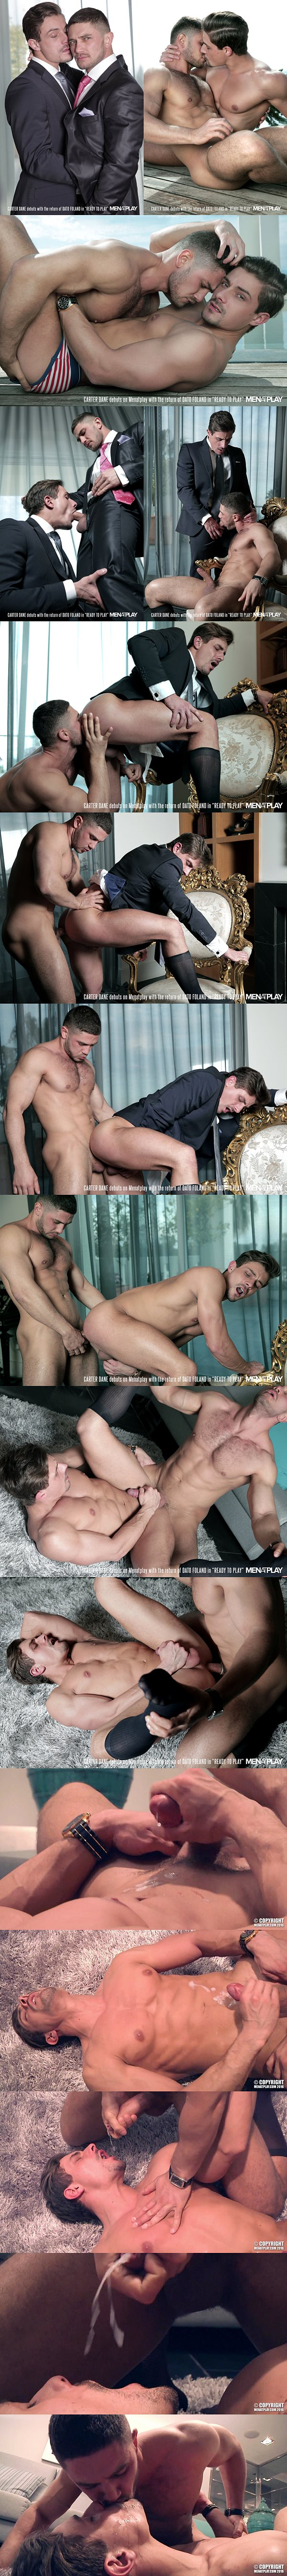 Dato Foland fucks the cum out of Carter Dane and gives Carter a big facial at Menatplay 02